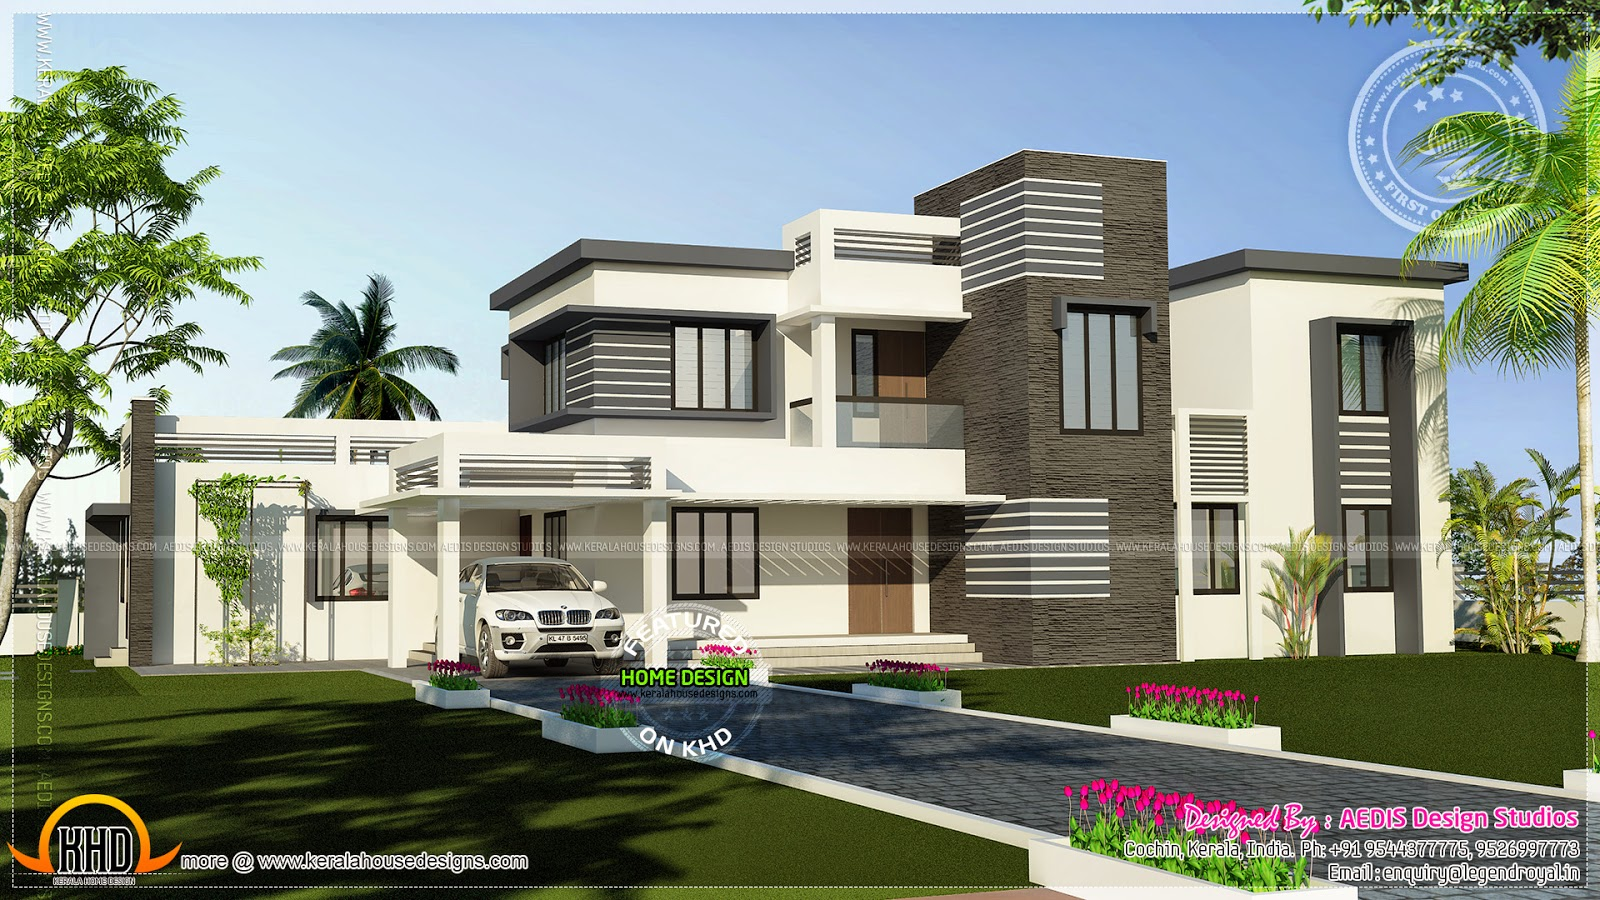 Flat roof contemporary home in 2994 square feet  Kerala home design and floor plans